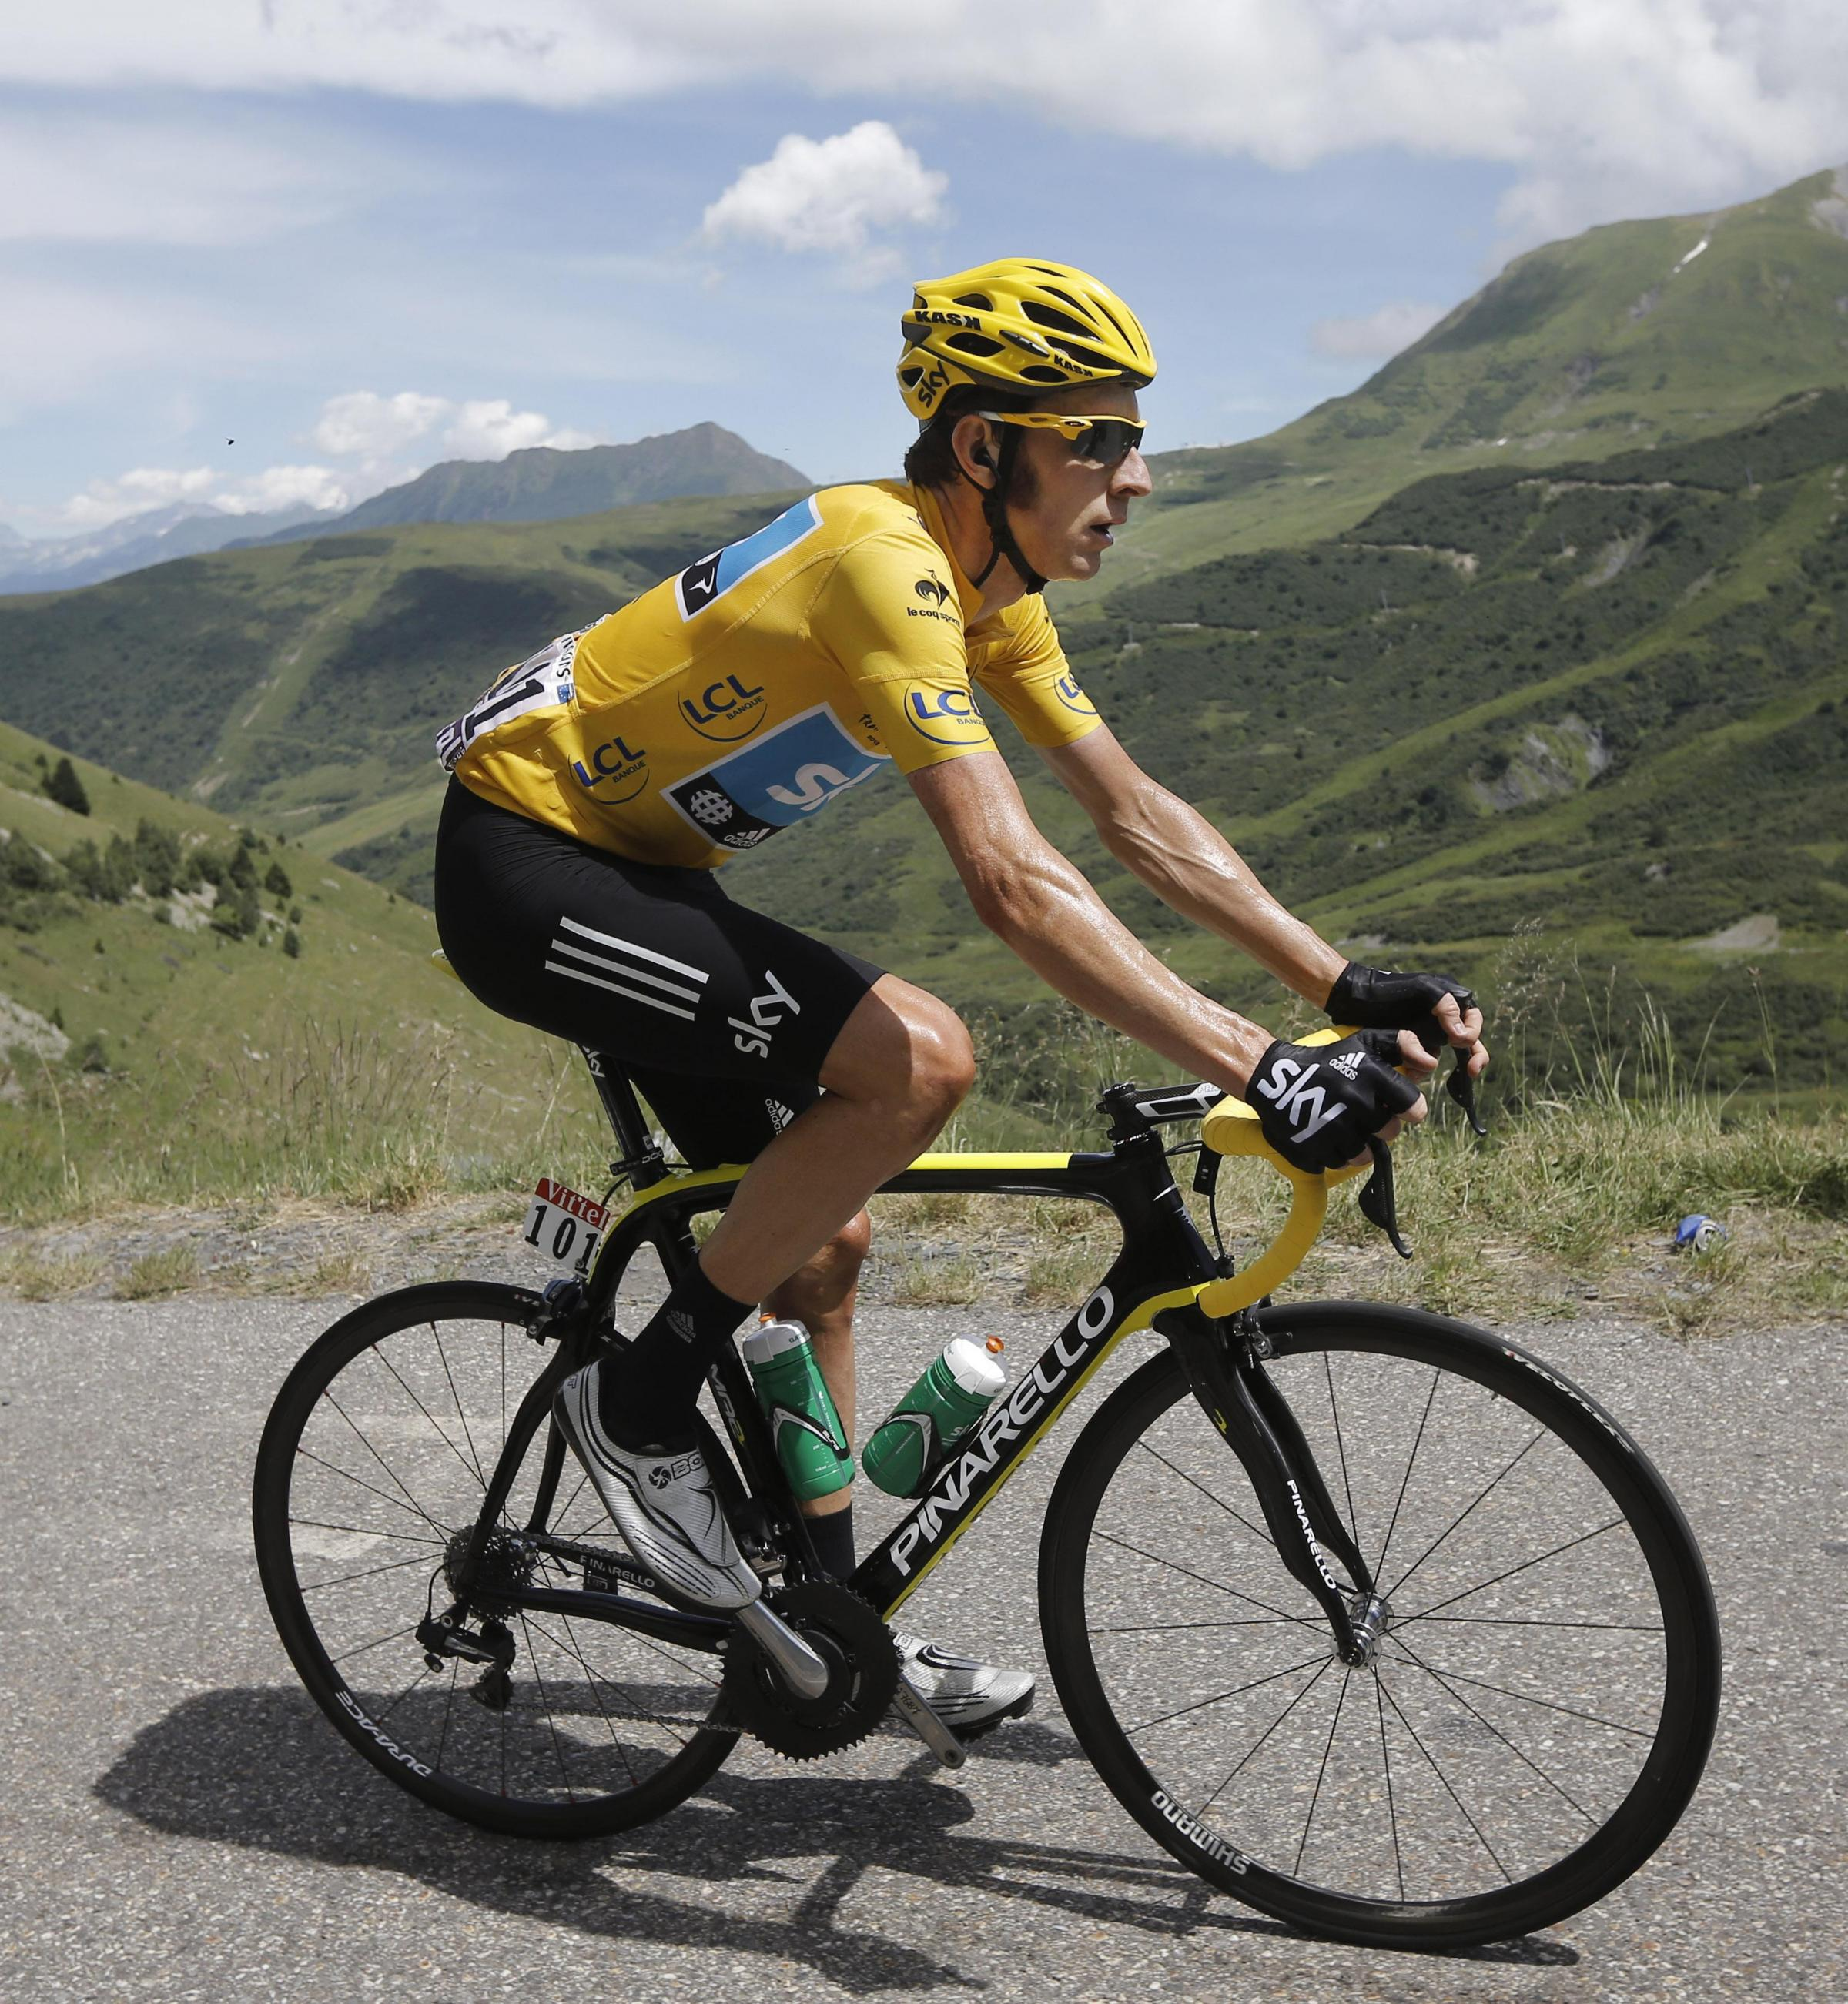 Tour de France to be Lancashire's moneyspinner